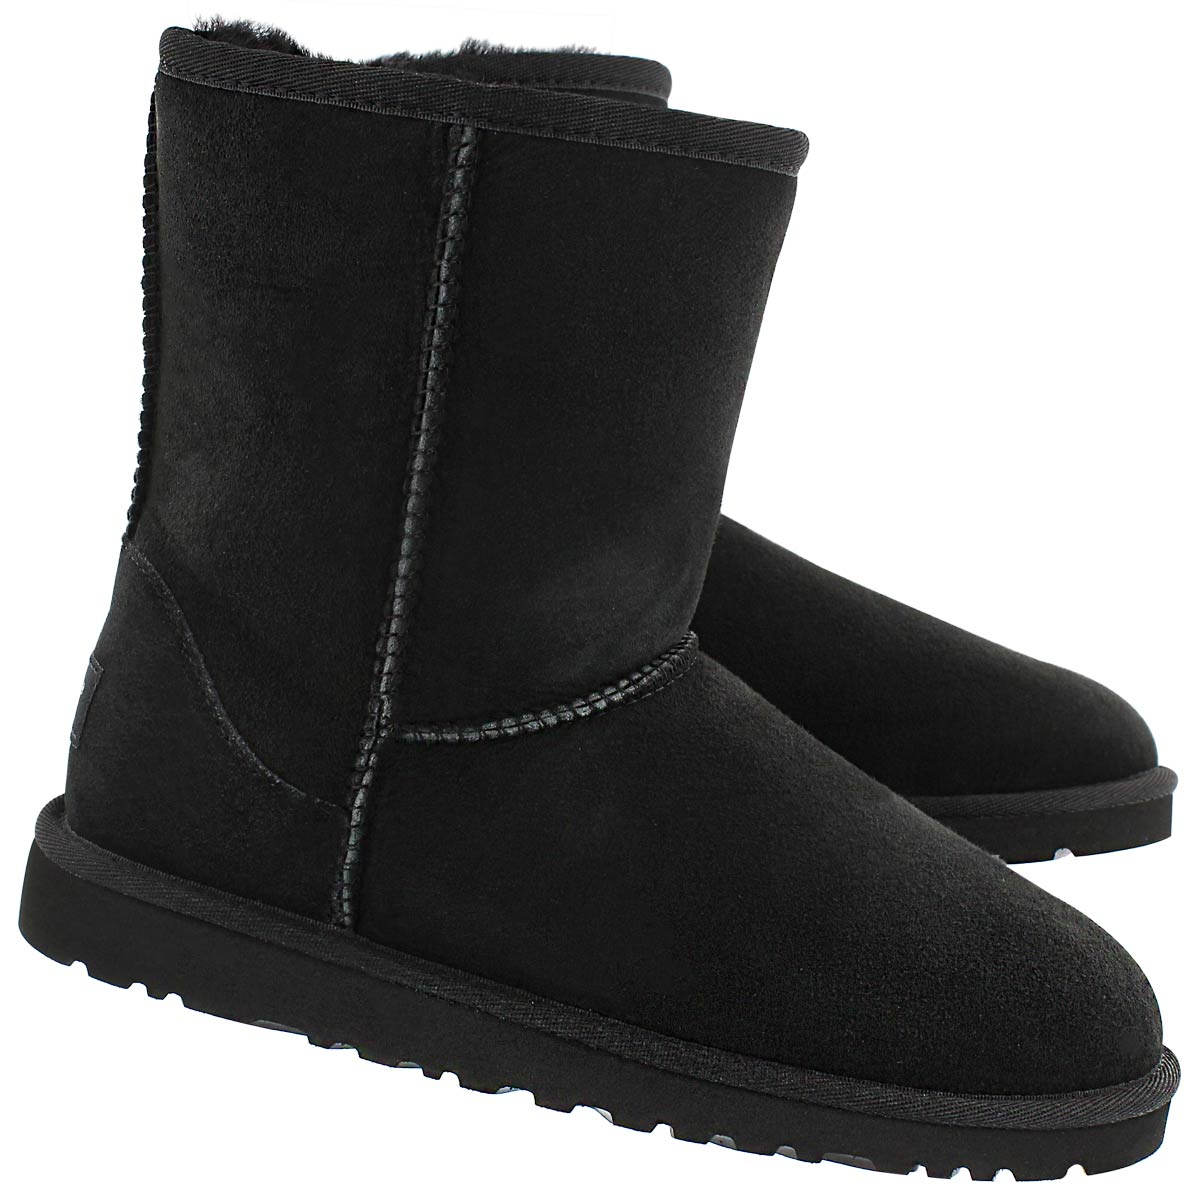 Grls Classic Short black sheepskin boot